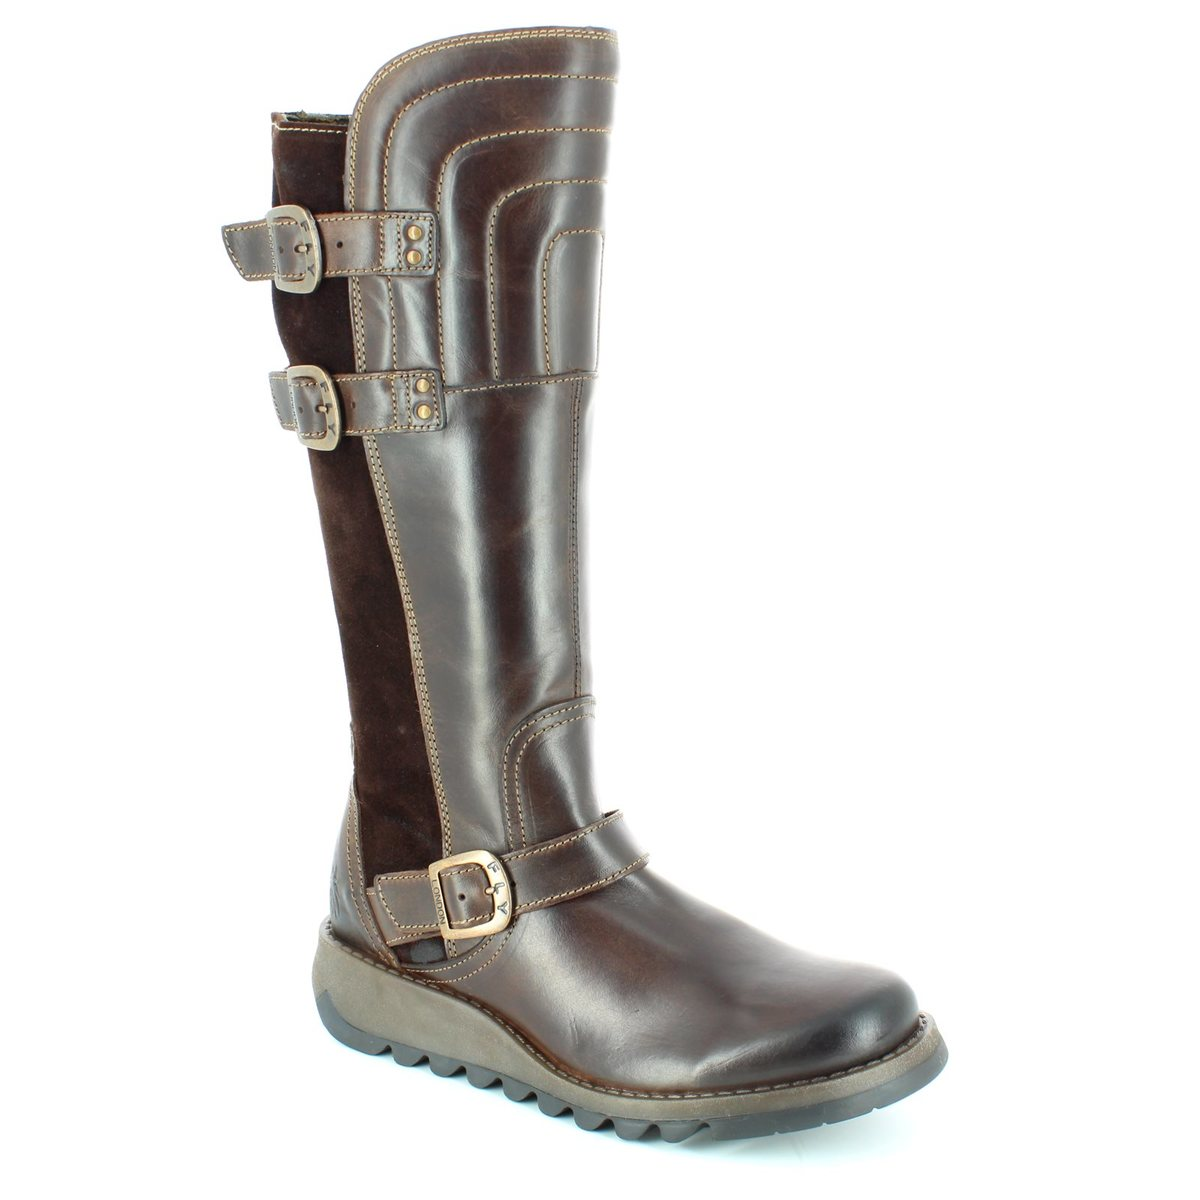 6878a727534 Fly London Sher 730 P143730-001 Brown knee-high boots